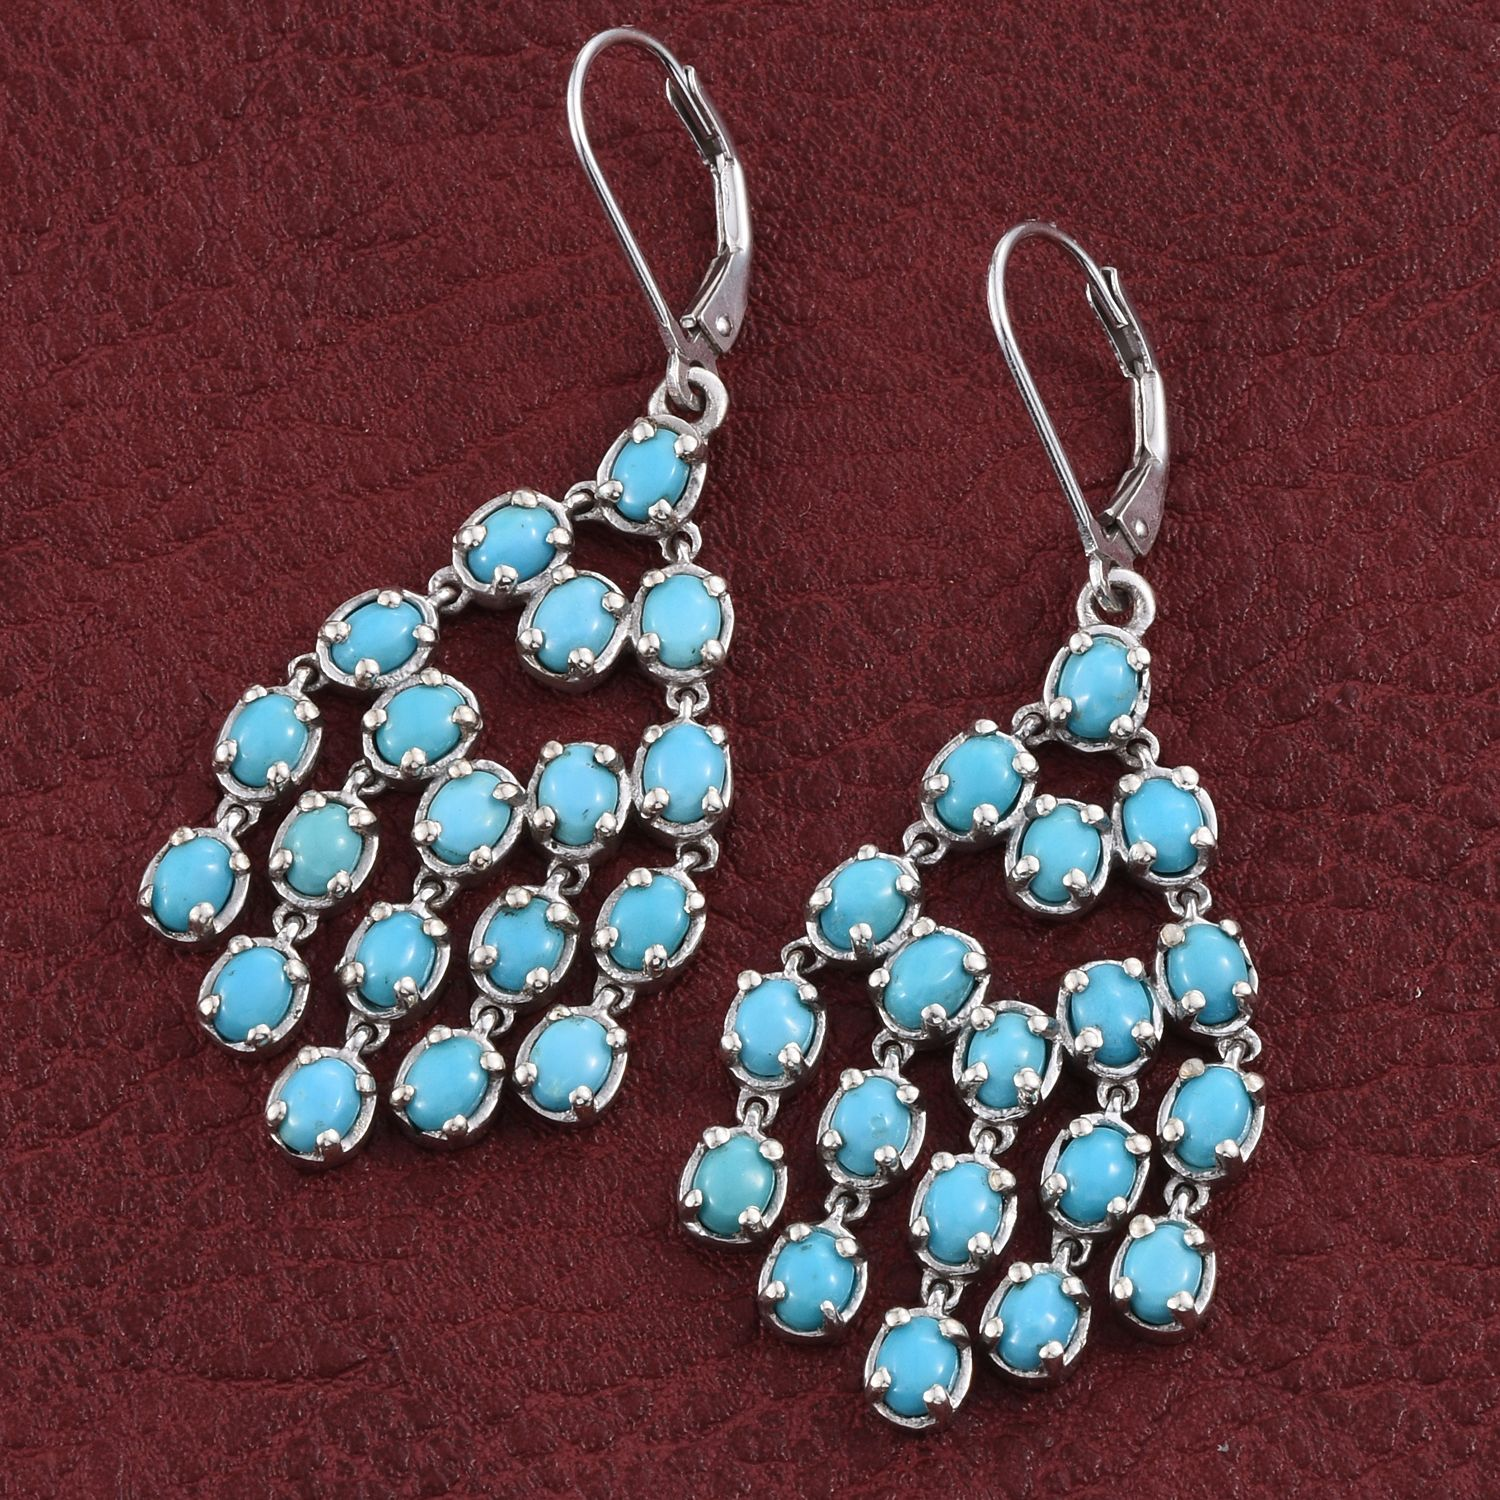 Arizona Sleeping Beauty Turquoise Platinum Over Sterling Silver Lever Back Chandelier Earrings Tgw 6 850 Cts